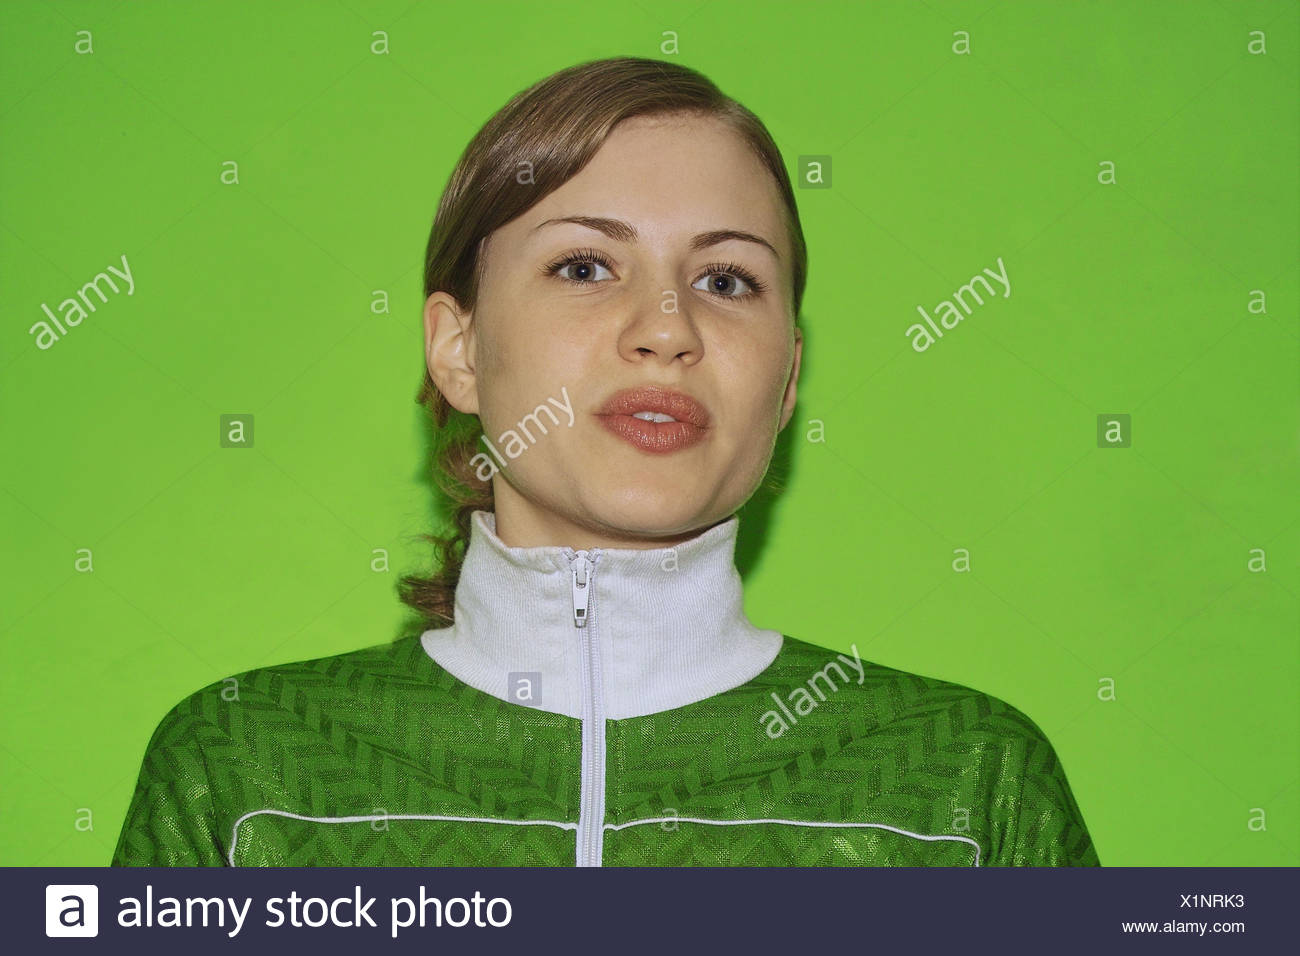 Woman, young, horse's tail, portrait, women's portrait, 20-30 years, long-haired, wavy, jacket, tracksuit top, sportily, collars, sportive, facial play, background green - Stock Image